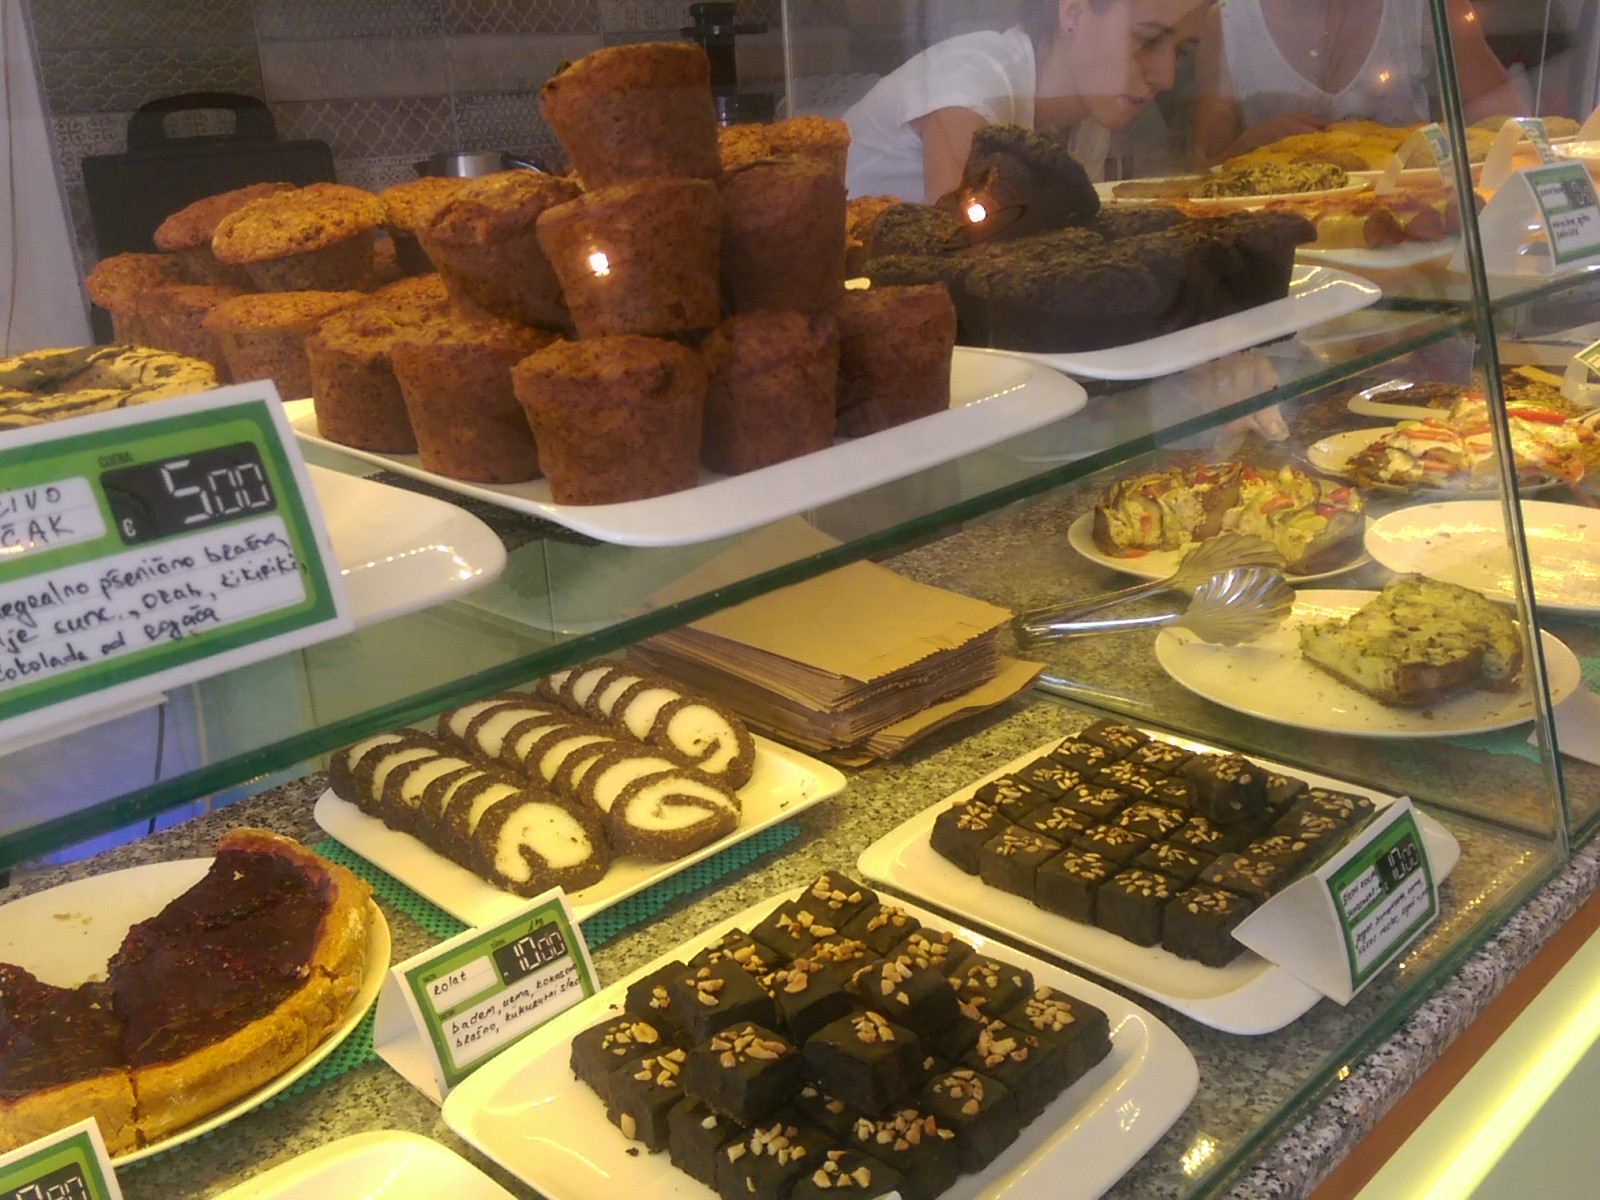 A glass counter with muffins on top and chocoaltes and pie on the bottom